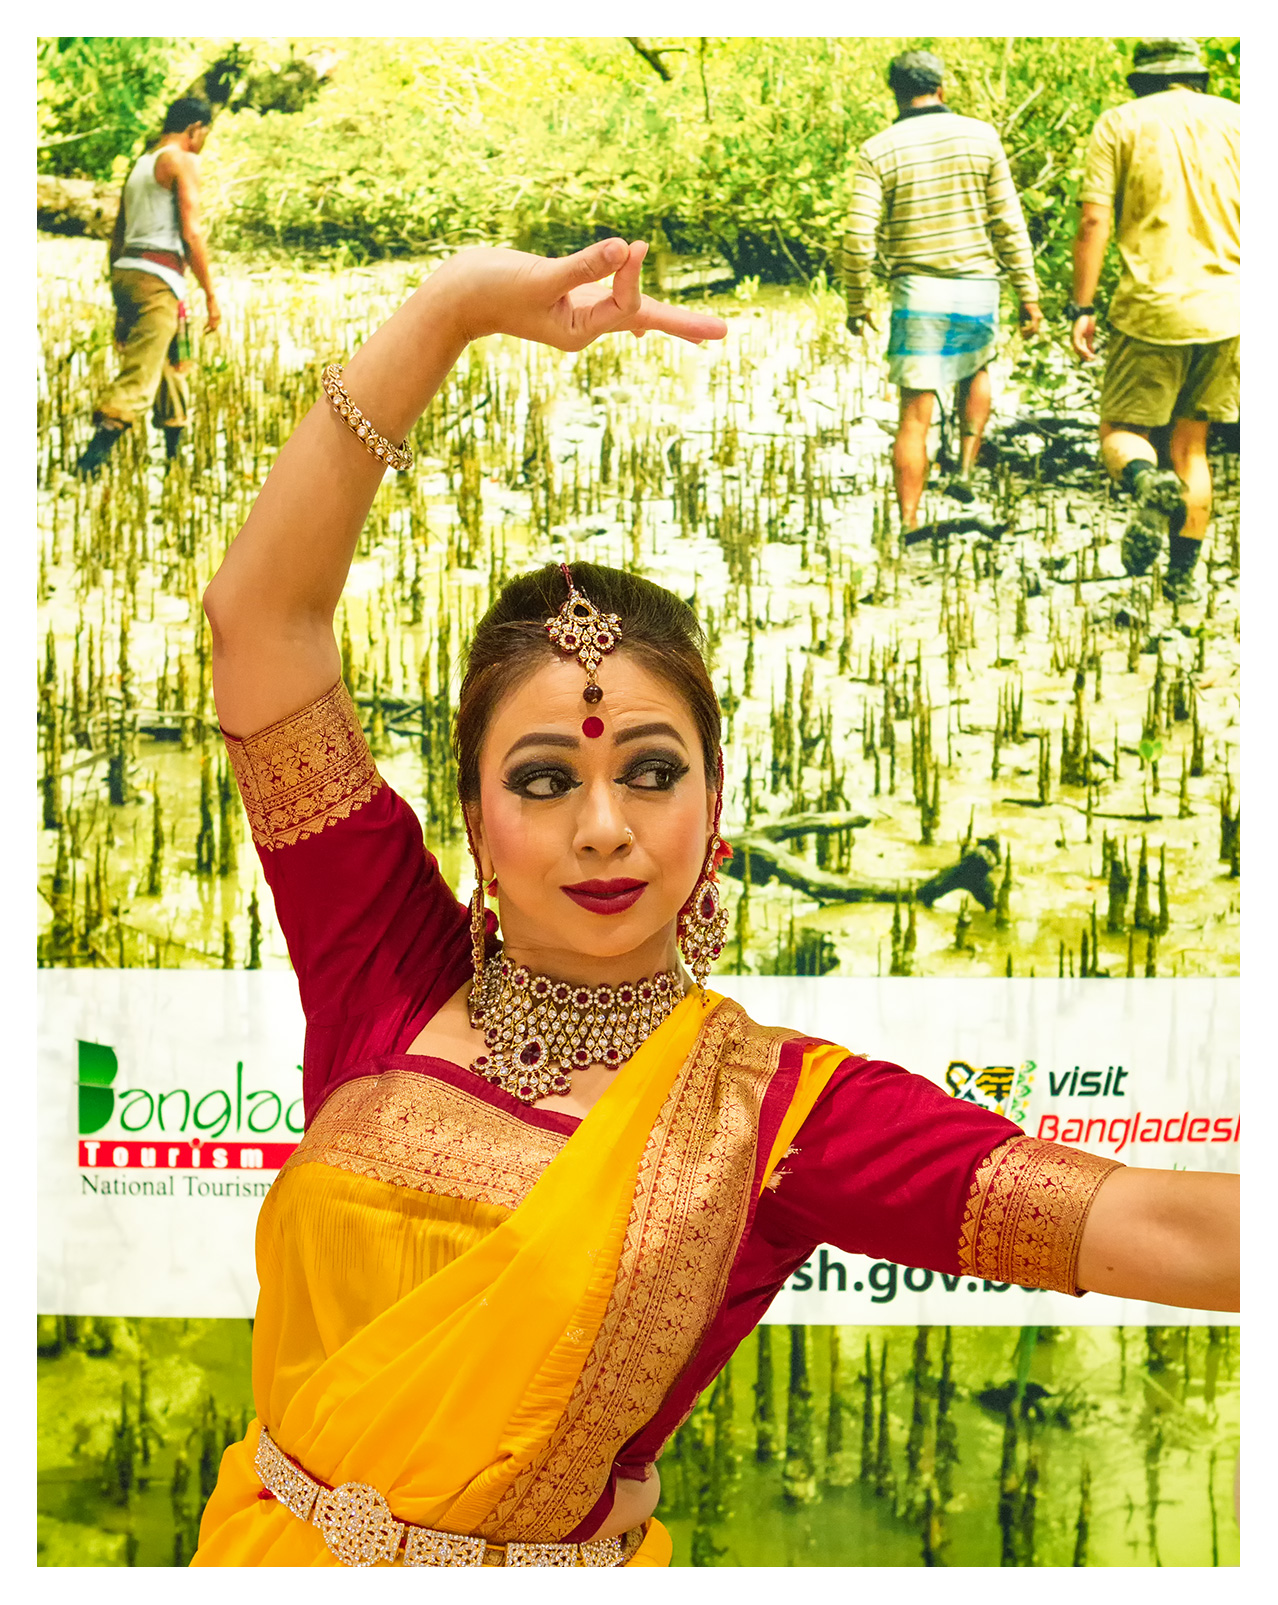 Editorial (portrait) photography: Dancer at the Bangladesh stand, World Travel Market 2017, ExCel London